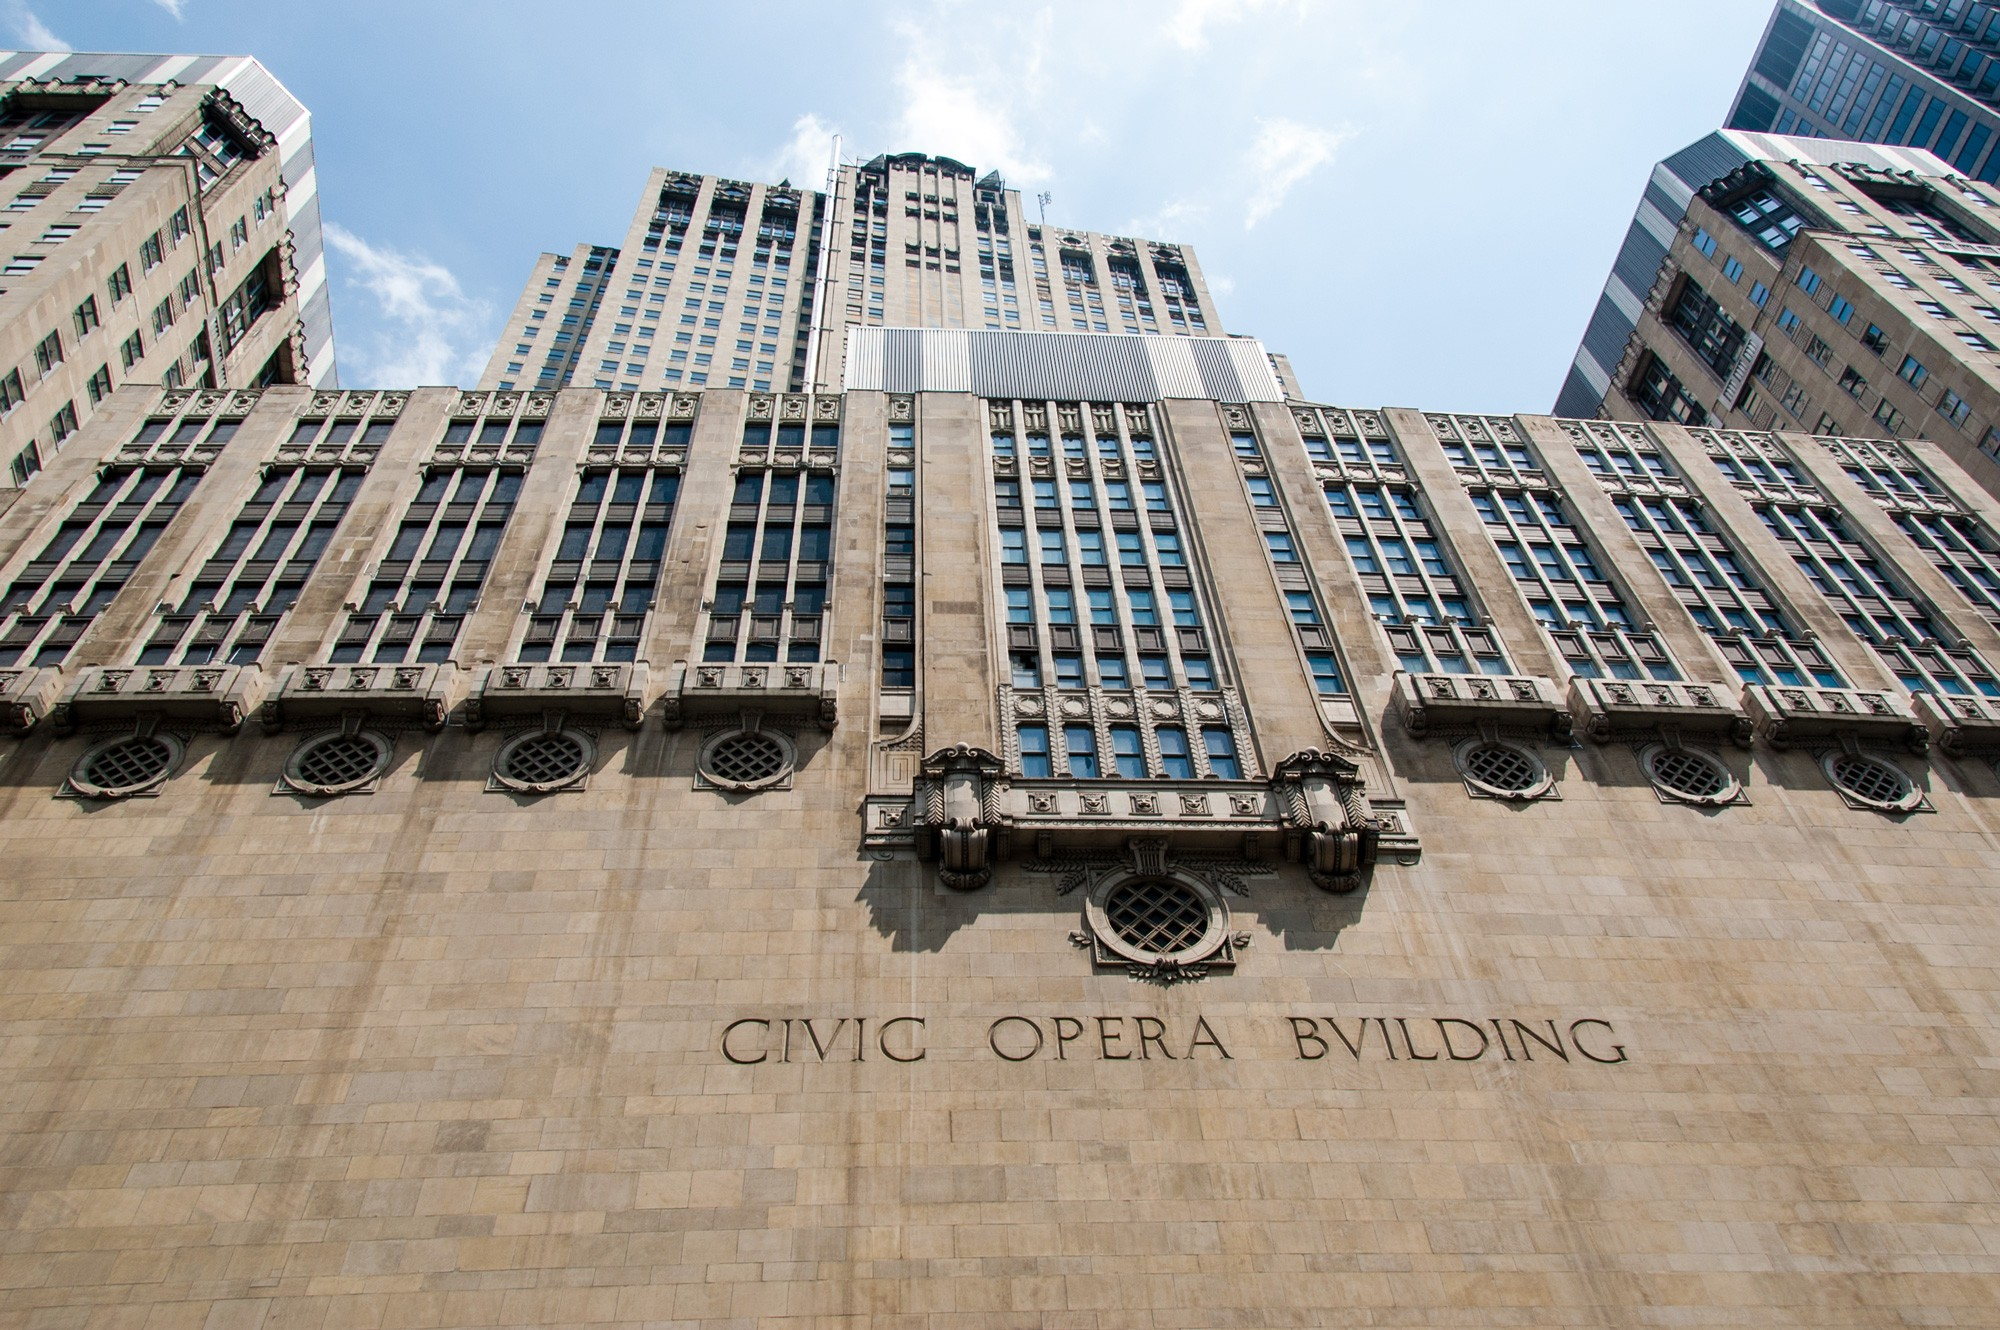 Civic Opera Building Not an active site by Eric Allix Rogers View